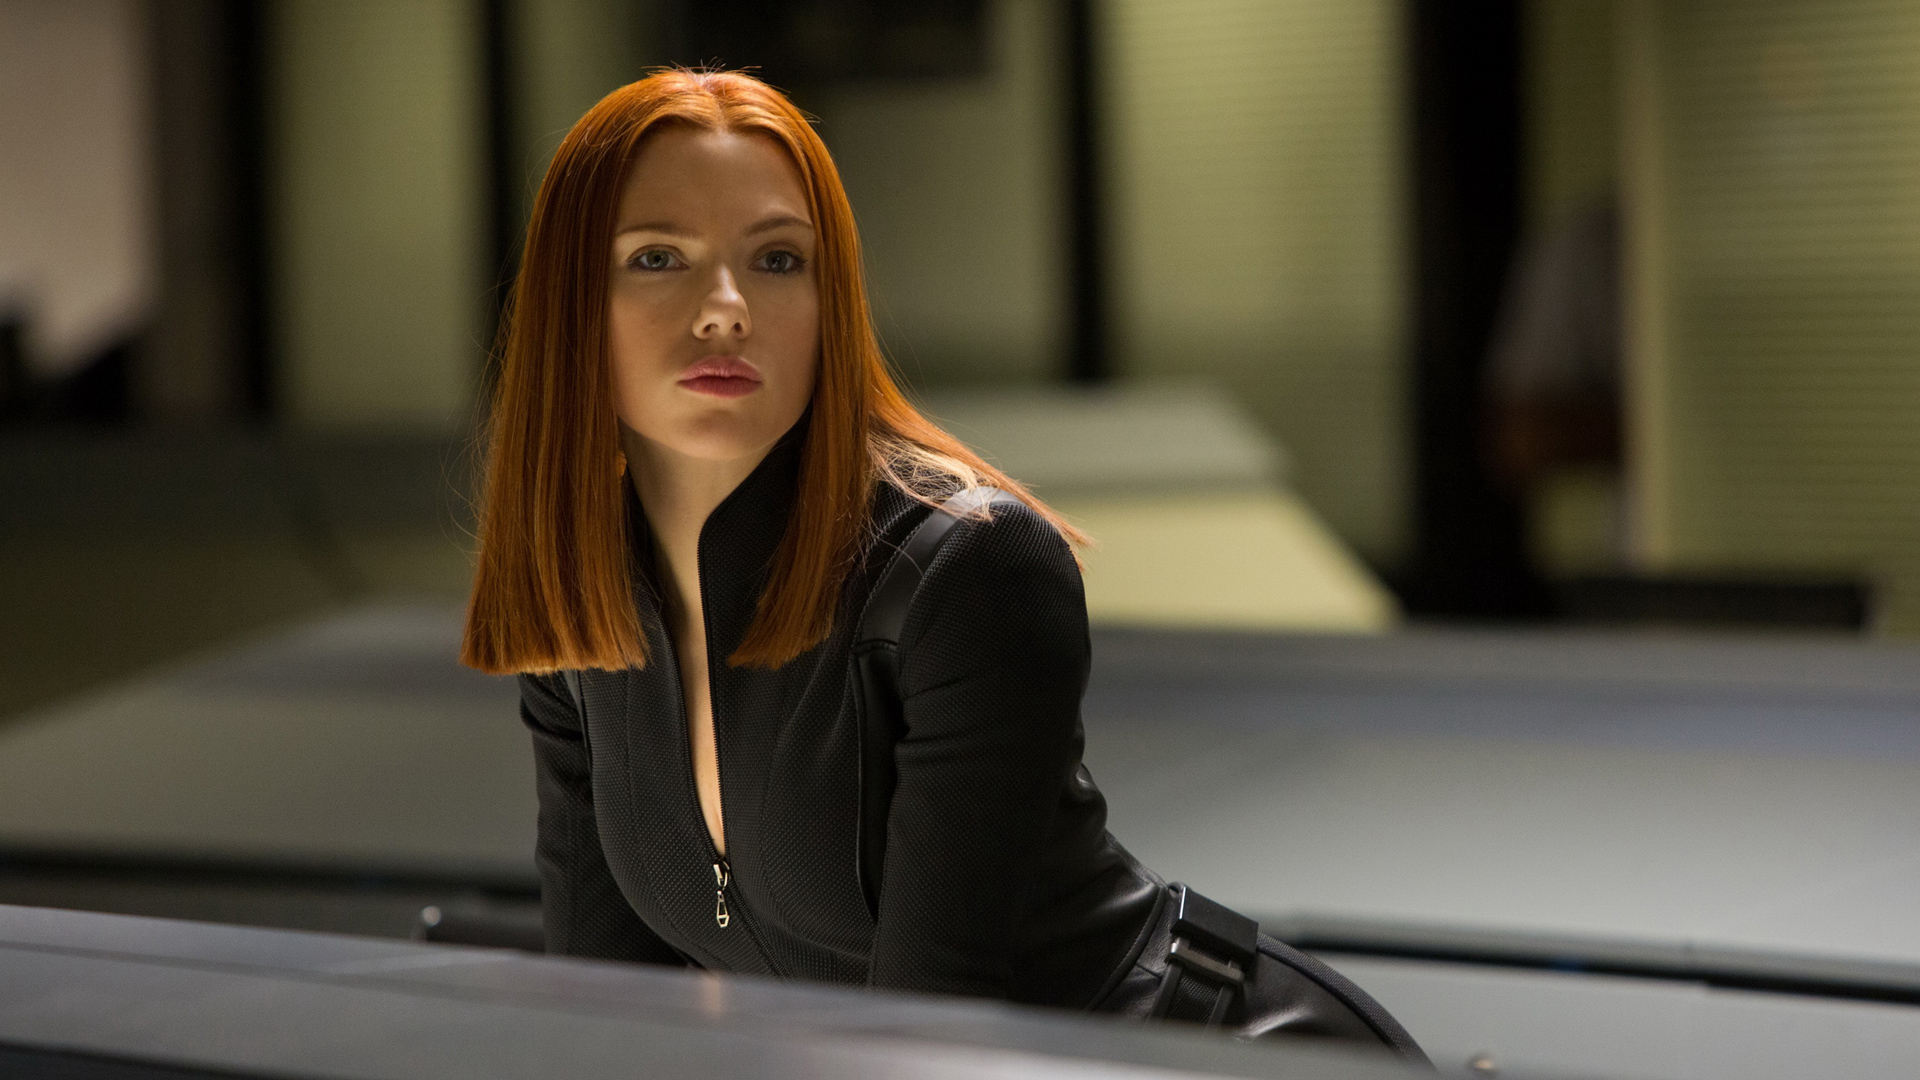 ... Scarlett Johansson Black Widow Woman Hd Wallpaper | Apps Directories